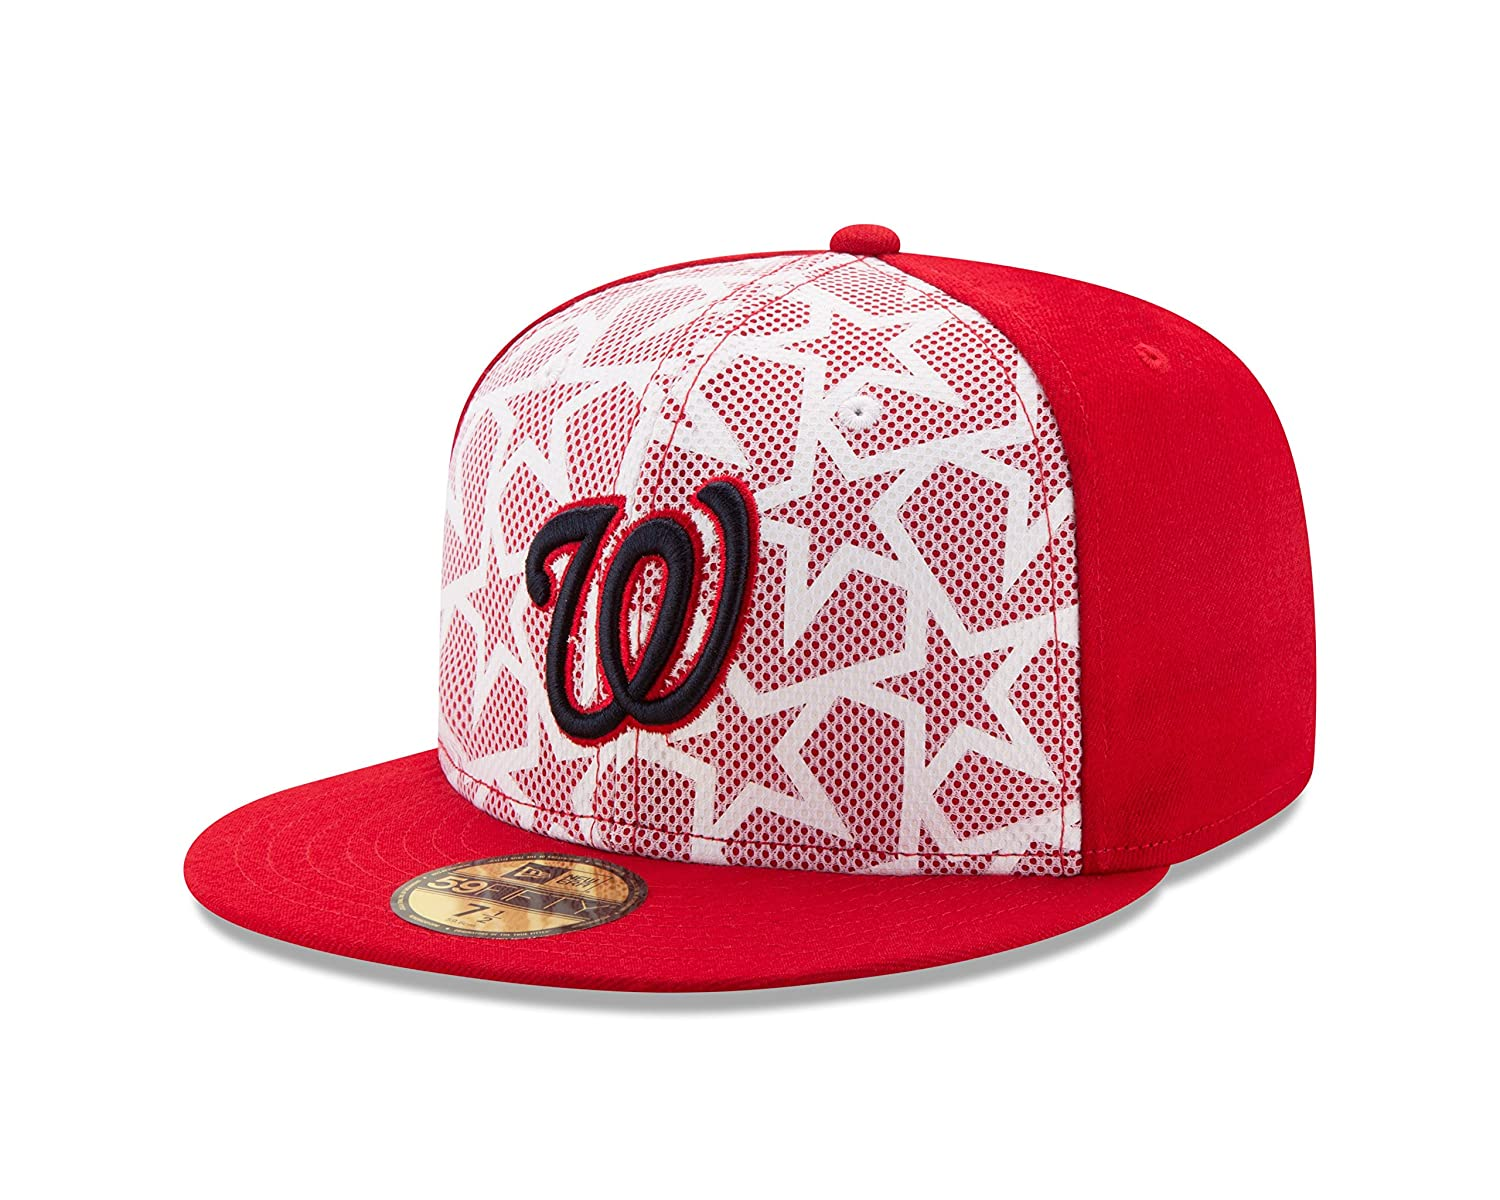 info for 0d1e7 fceef ... discount code for amazon new era mlb 2016 stars striped 59fifty fitted  cap sports outdoors 2c69e